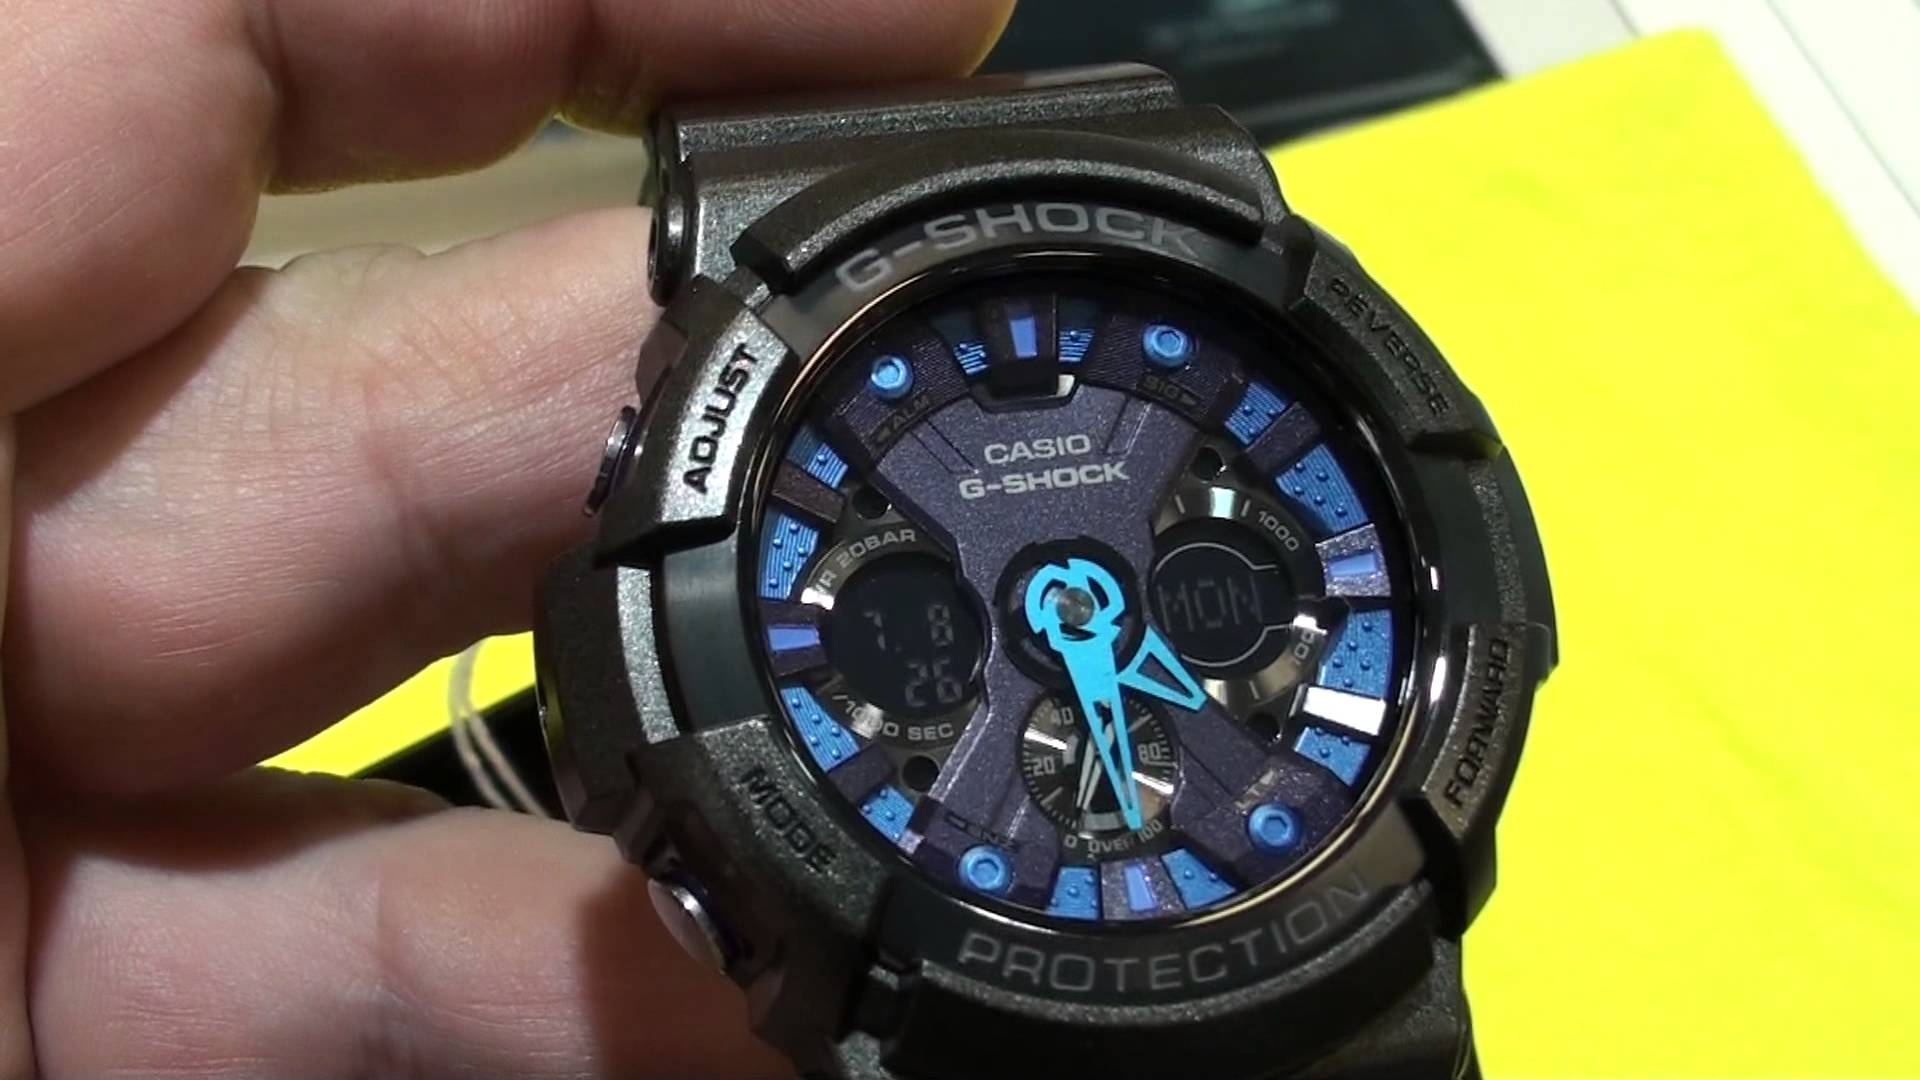 CASIO G-shock GA-100-1A2ER.